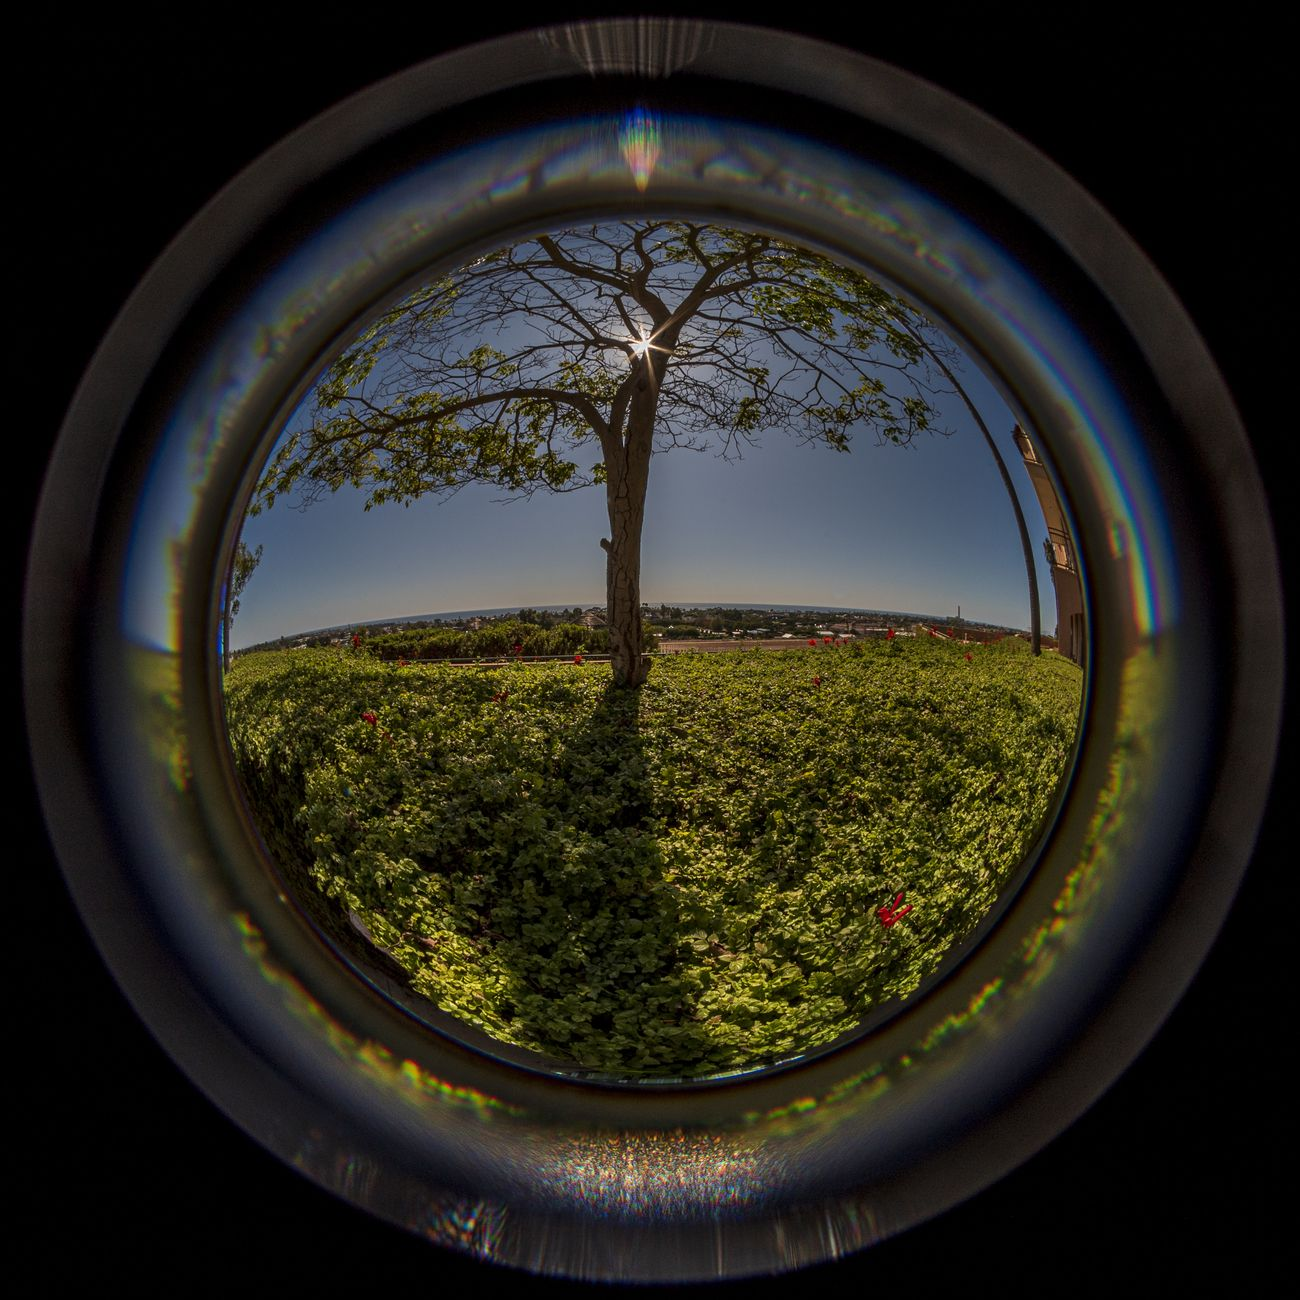 Fisheye view of tree and bushes with sun rays